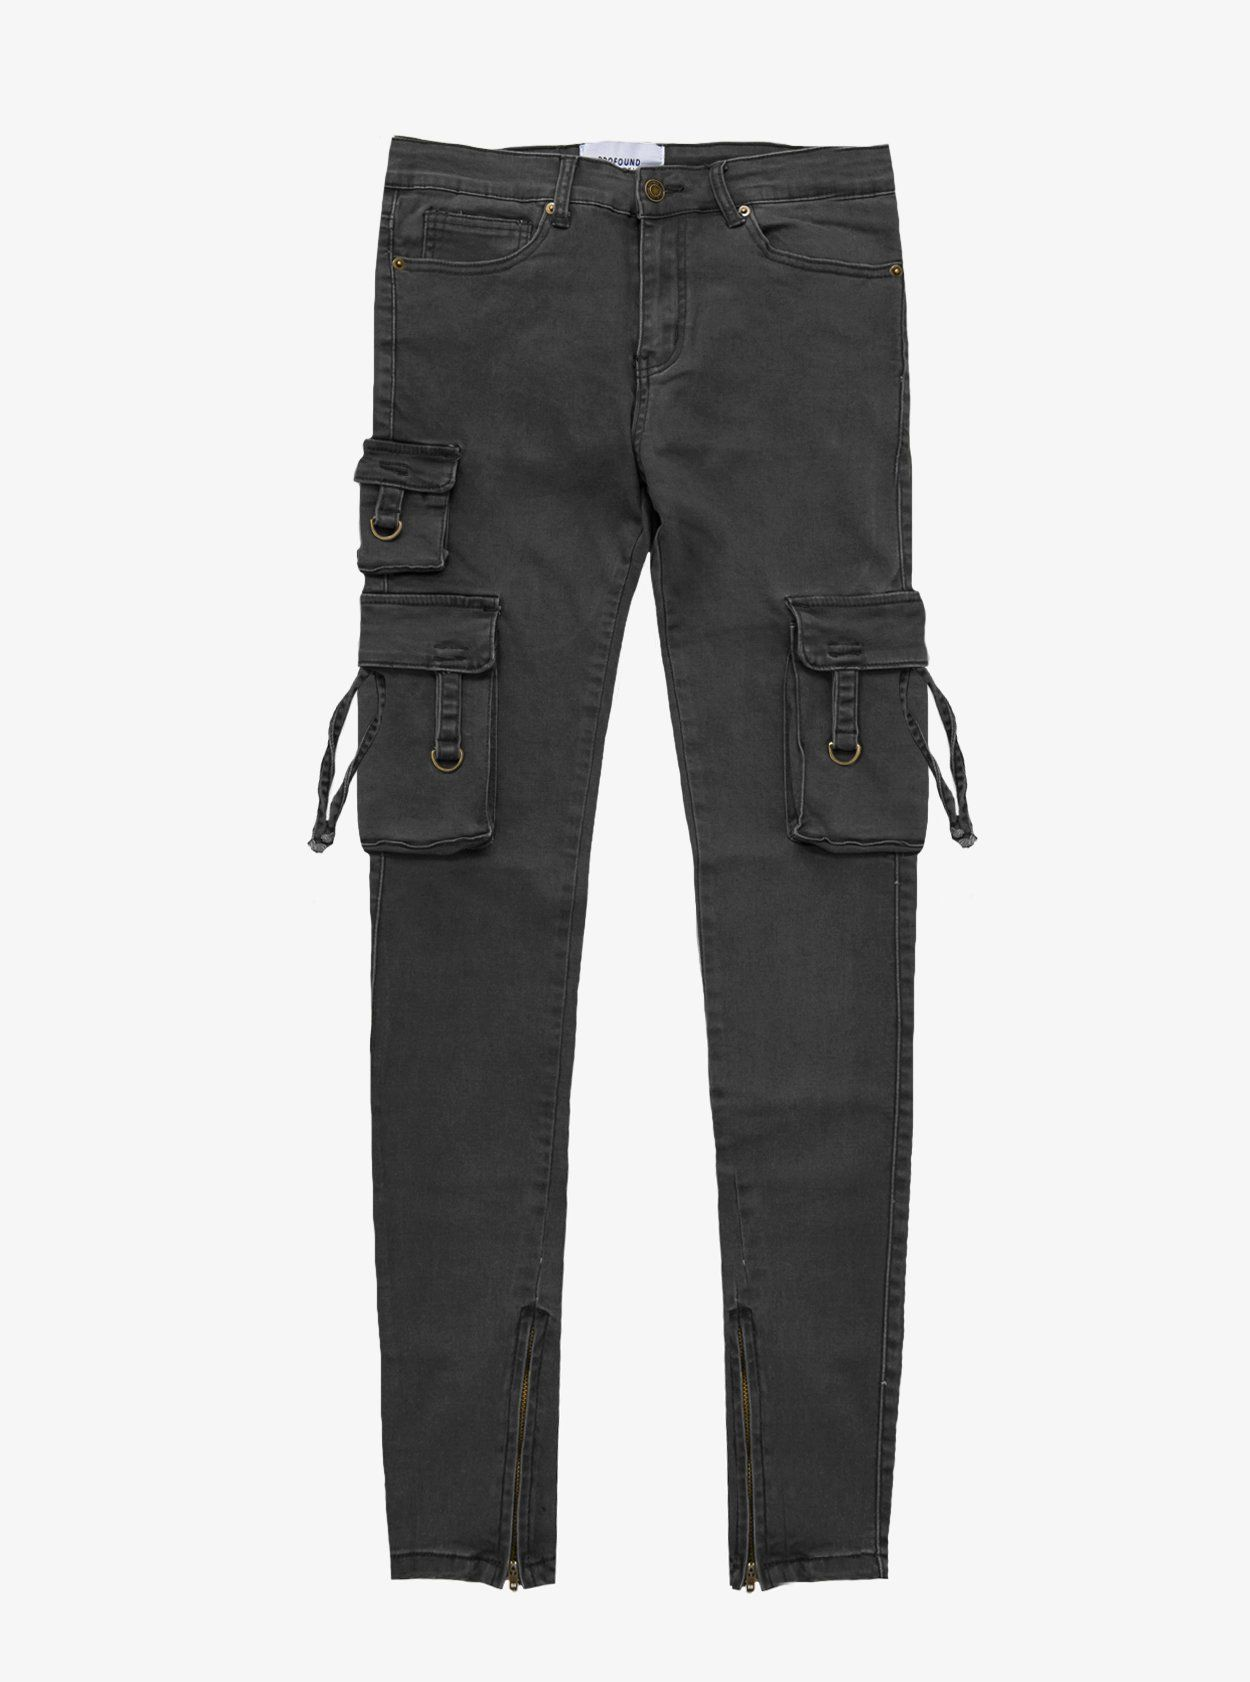 f1a674ea7 Faded black wash d ring cargo pocket skinny fit denim jeans by profound  aesthetic